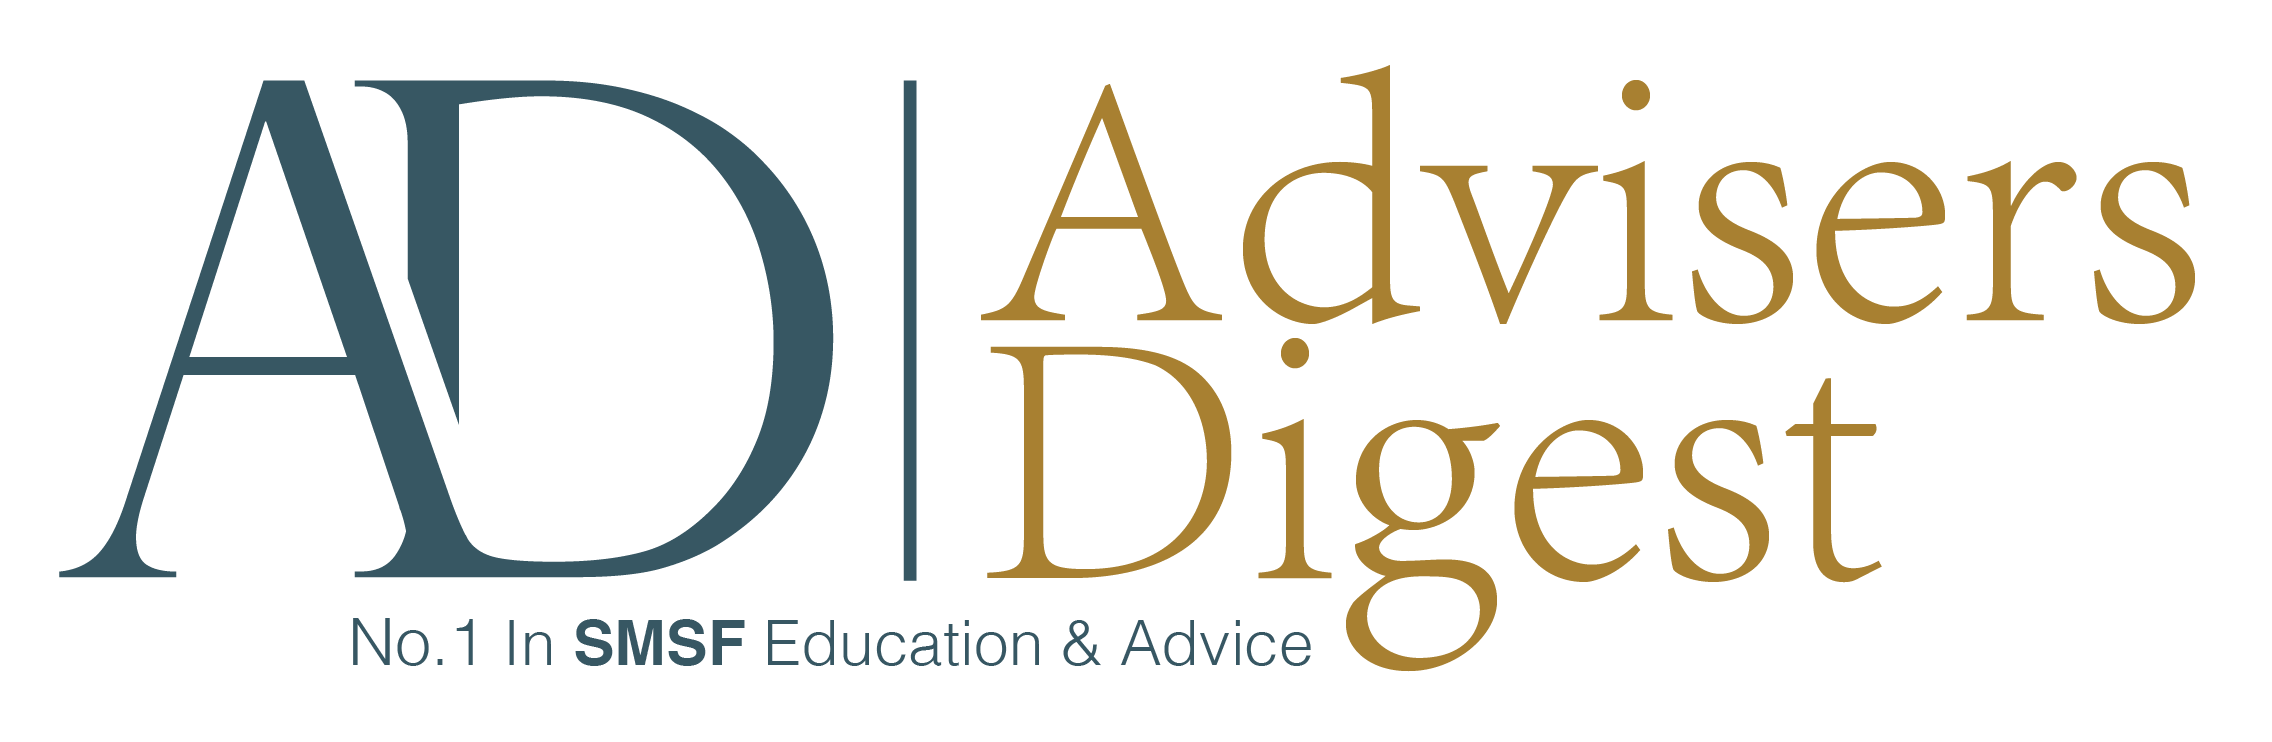 Peter Johnson's Advisers Digest